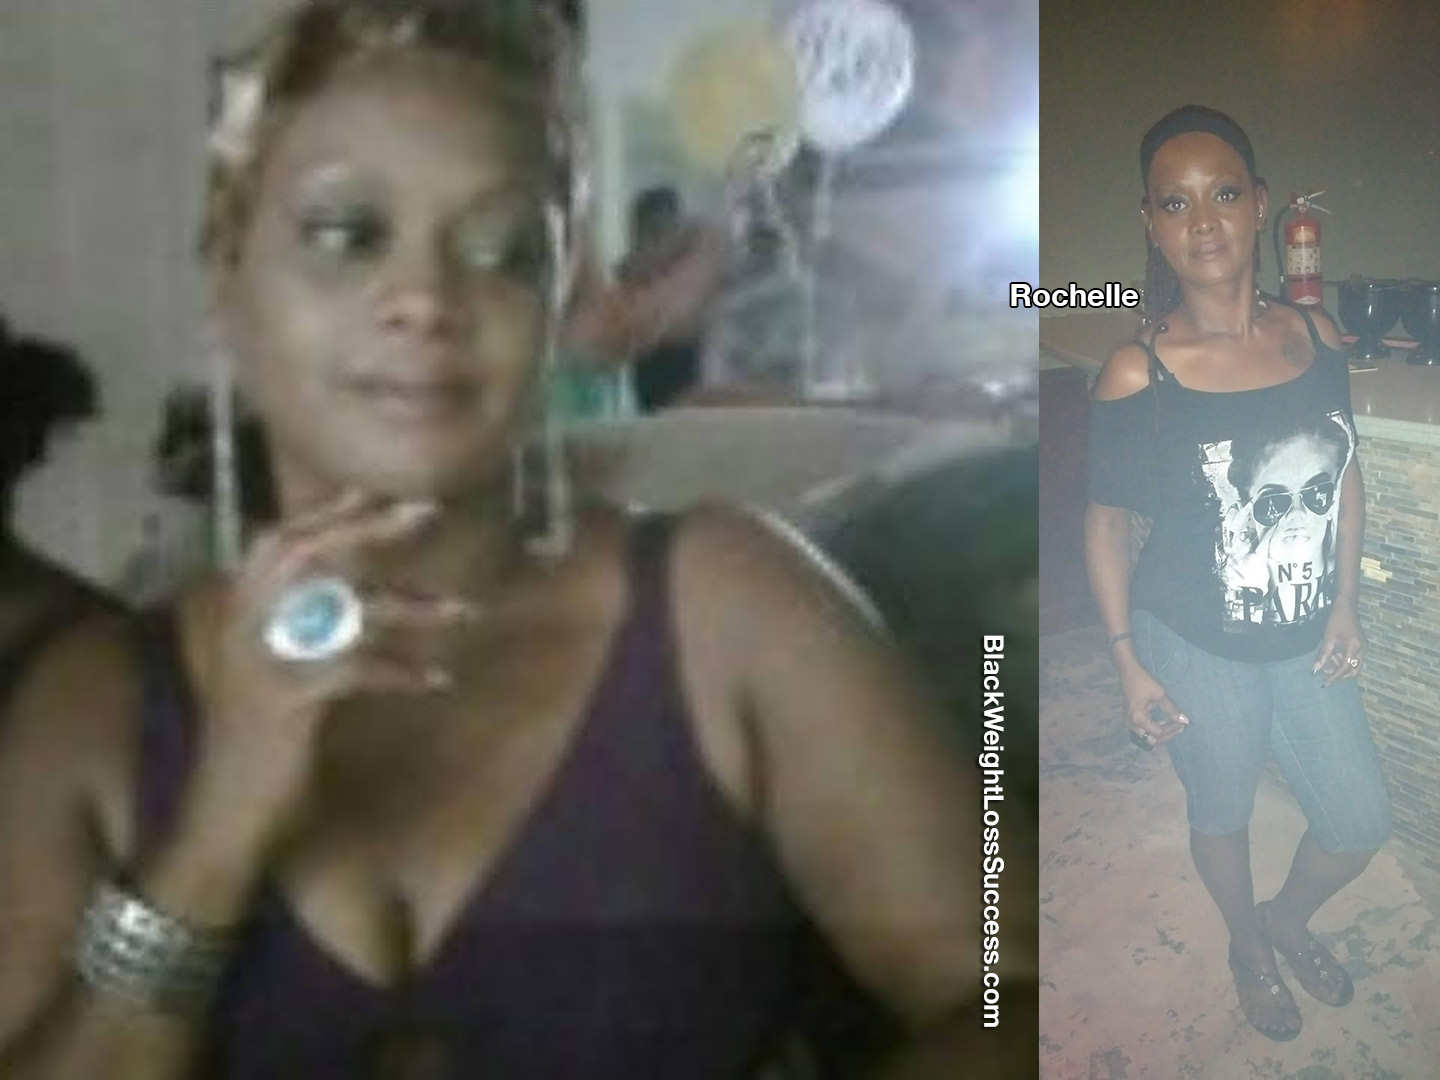 Rochelle before and after weight loss